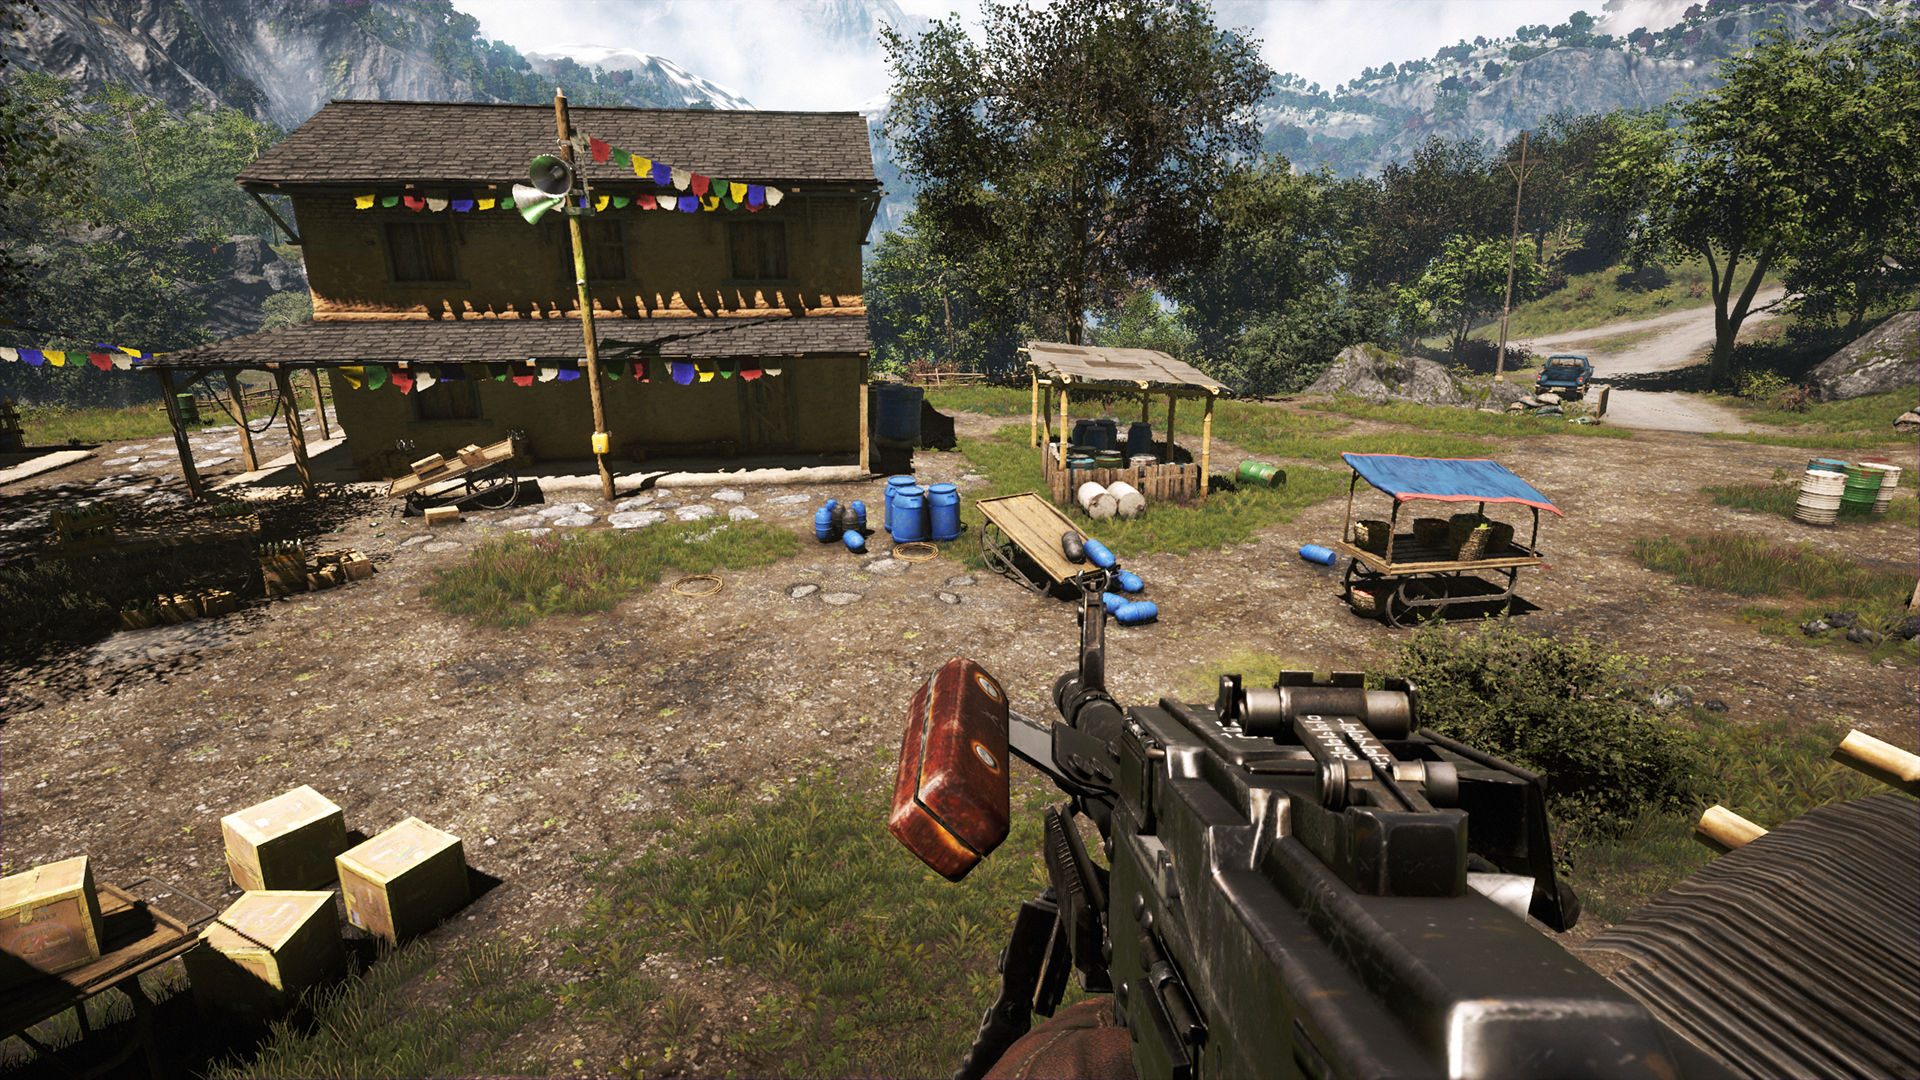 Geforcecom Far Cry 4 Texture Quality Interactive Comparison Ultra Farcry4 Pc Game After